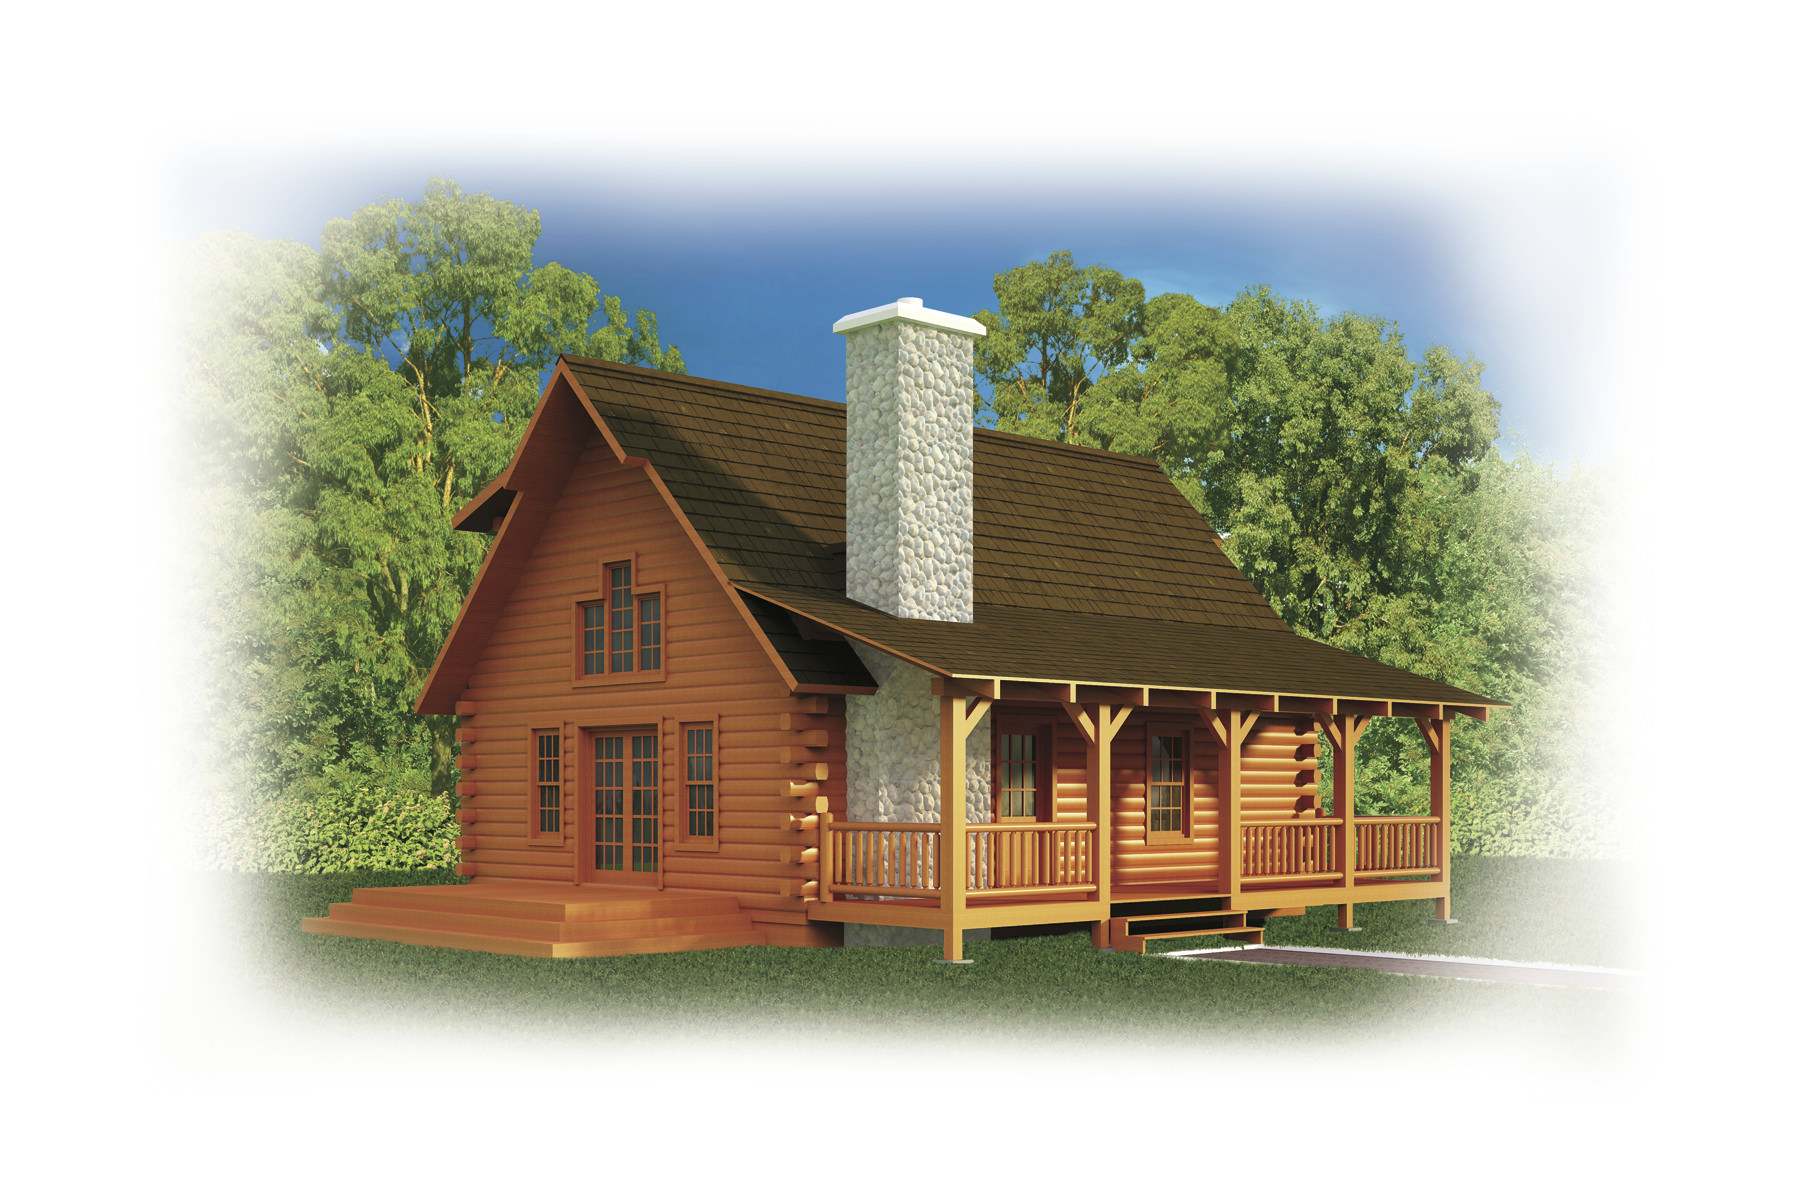 Strongwood Log Homes Floor Plans: Whitetail Log Cabin Plan By Strongwood Log Homes